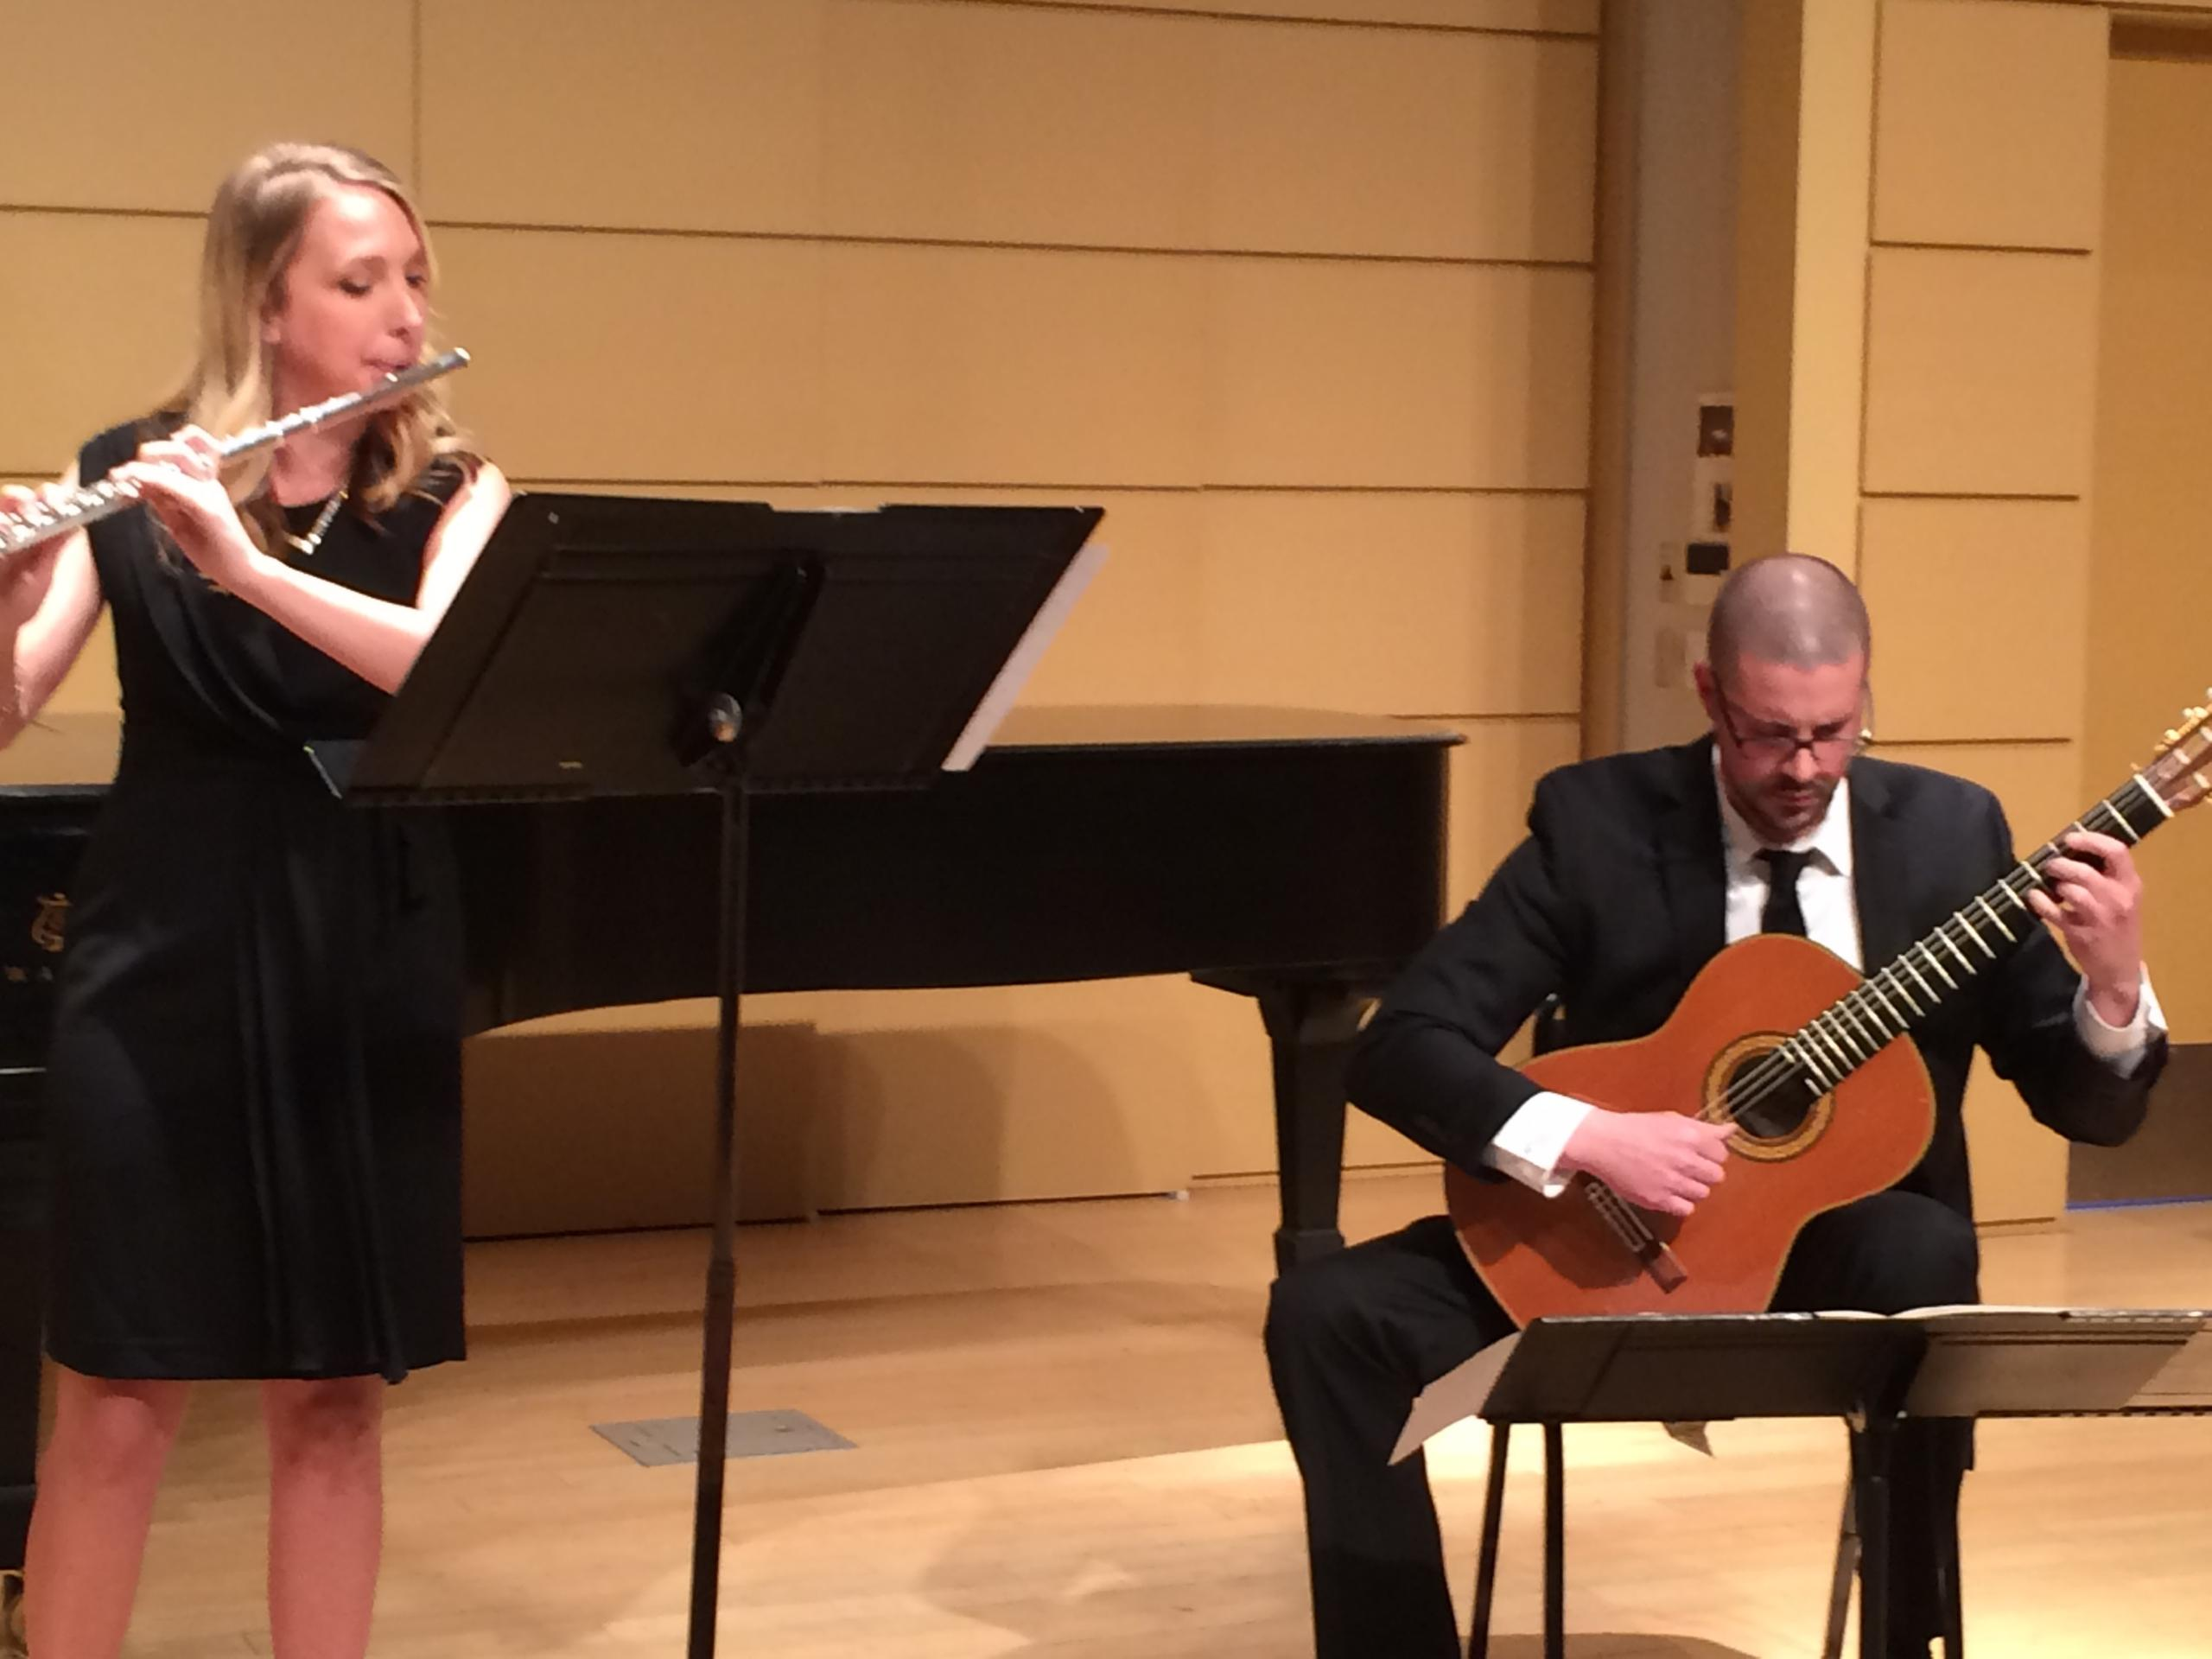 Nate performing a classical guitar and flute duo with friend Cheri France